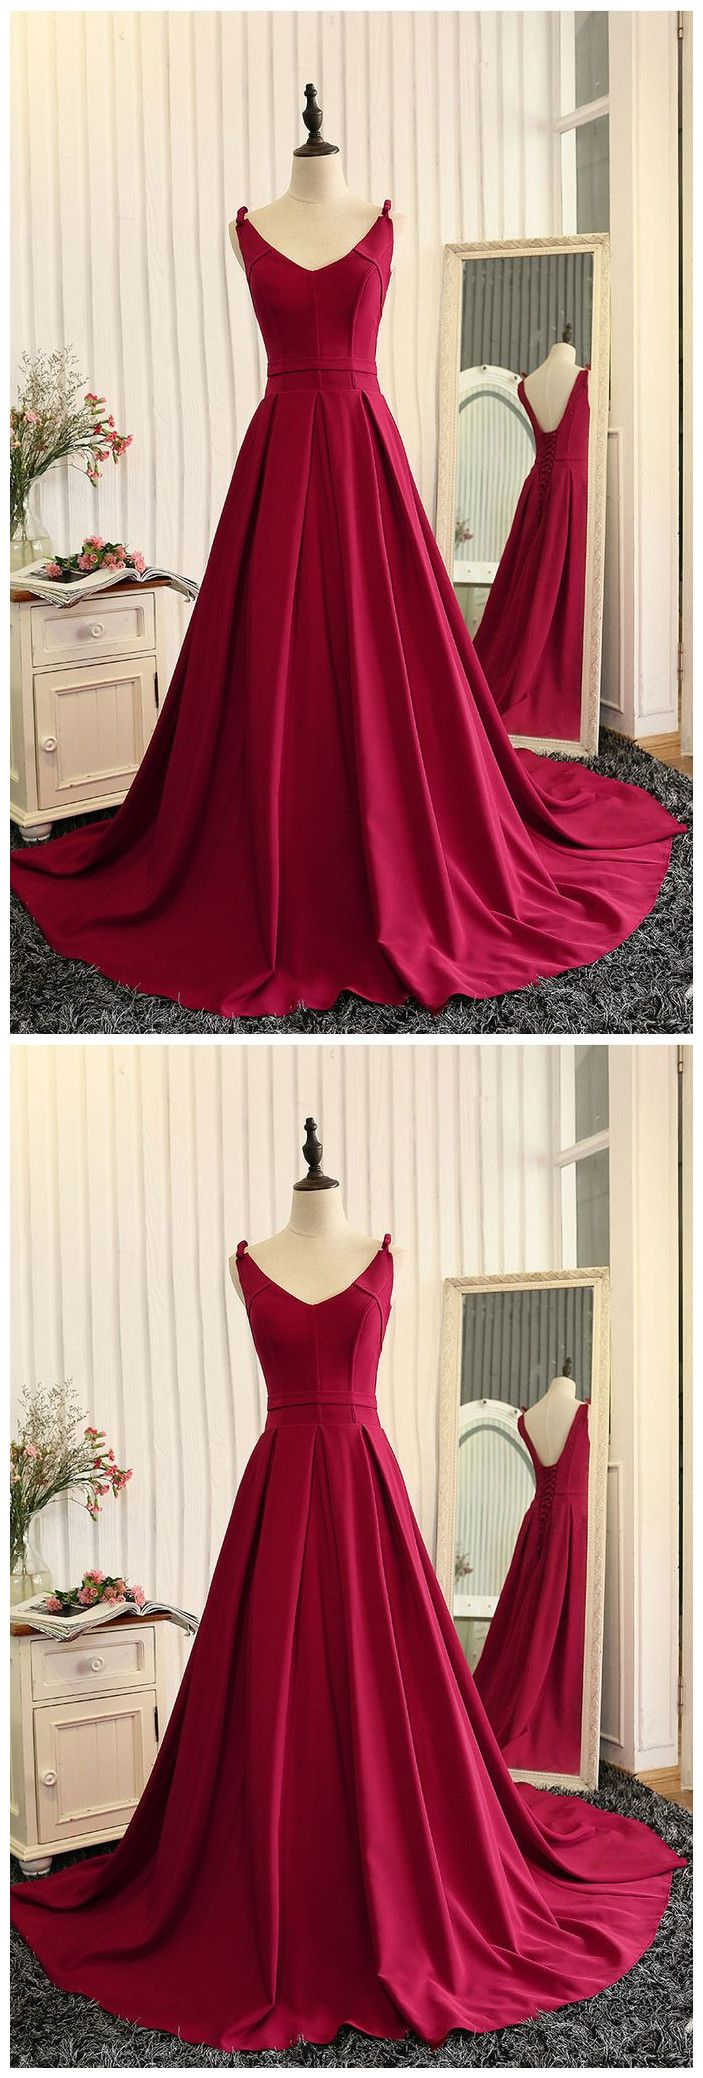 Formal simple satin burgundy long prom dress higownevening